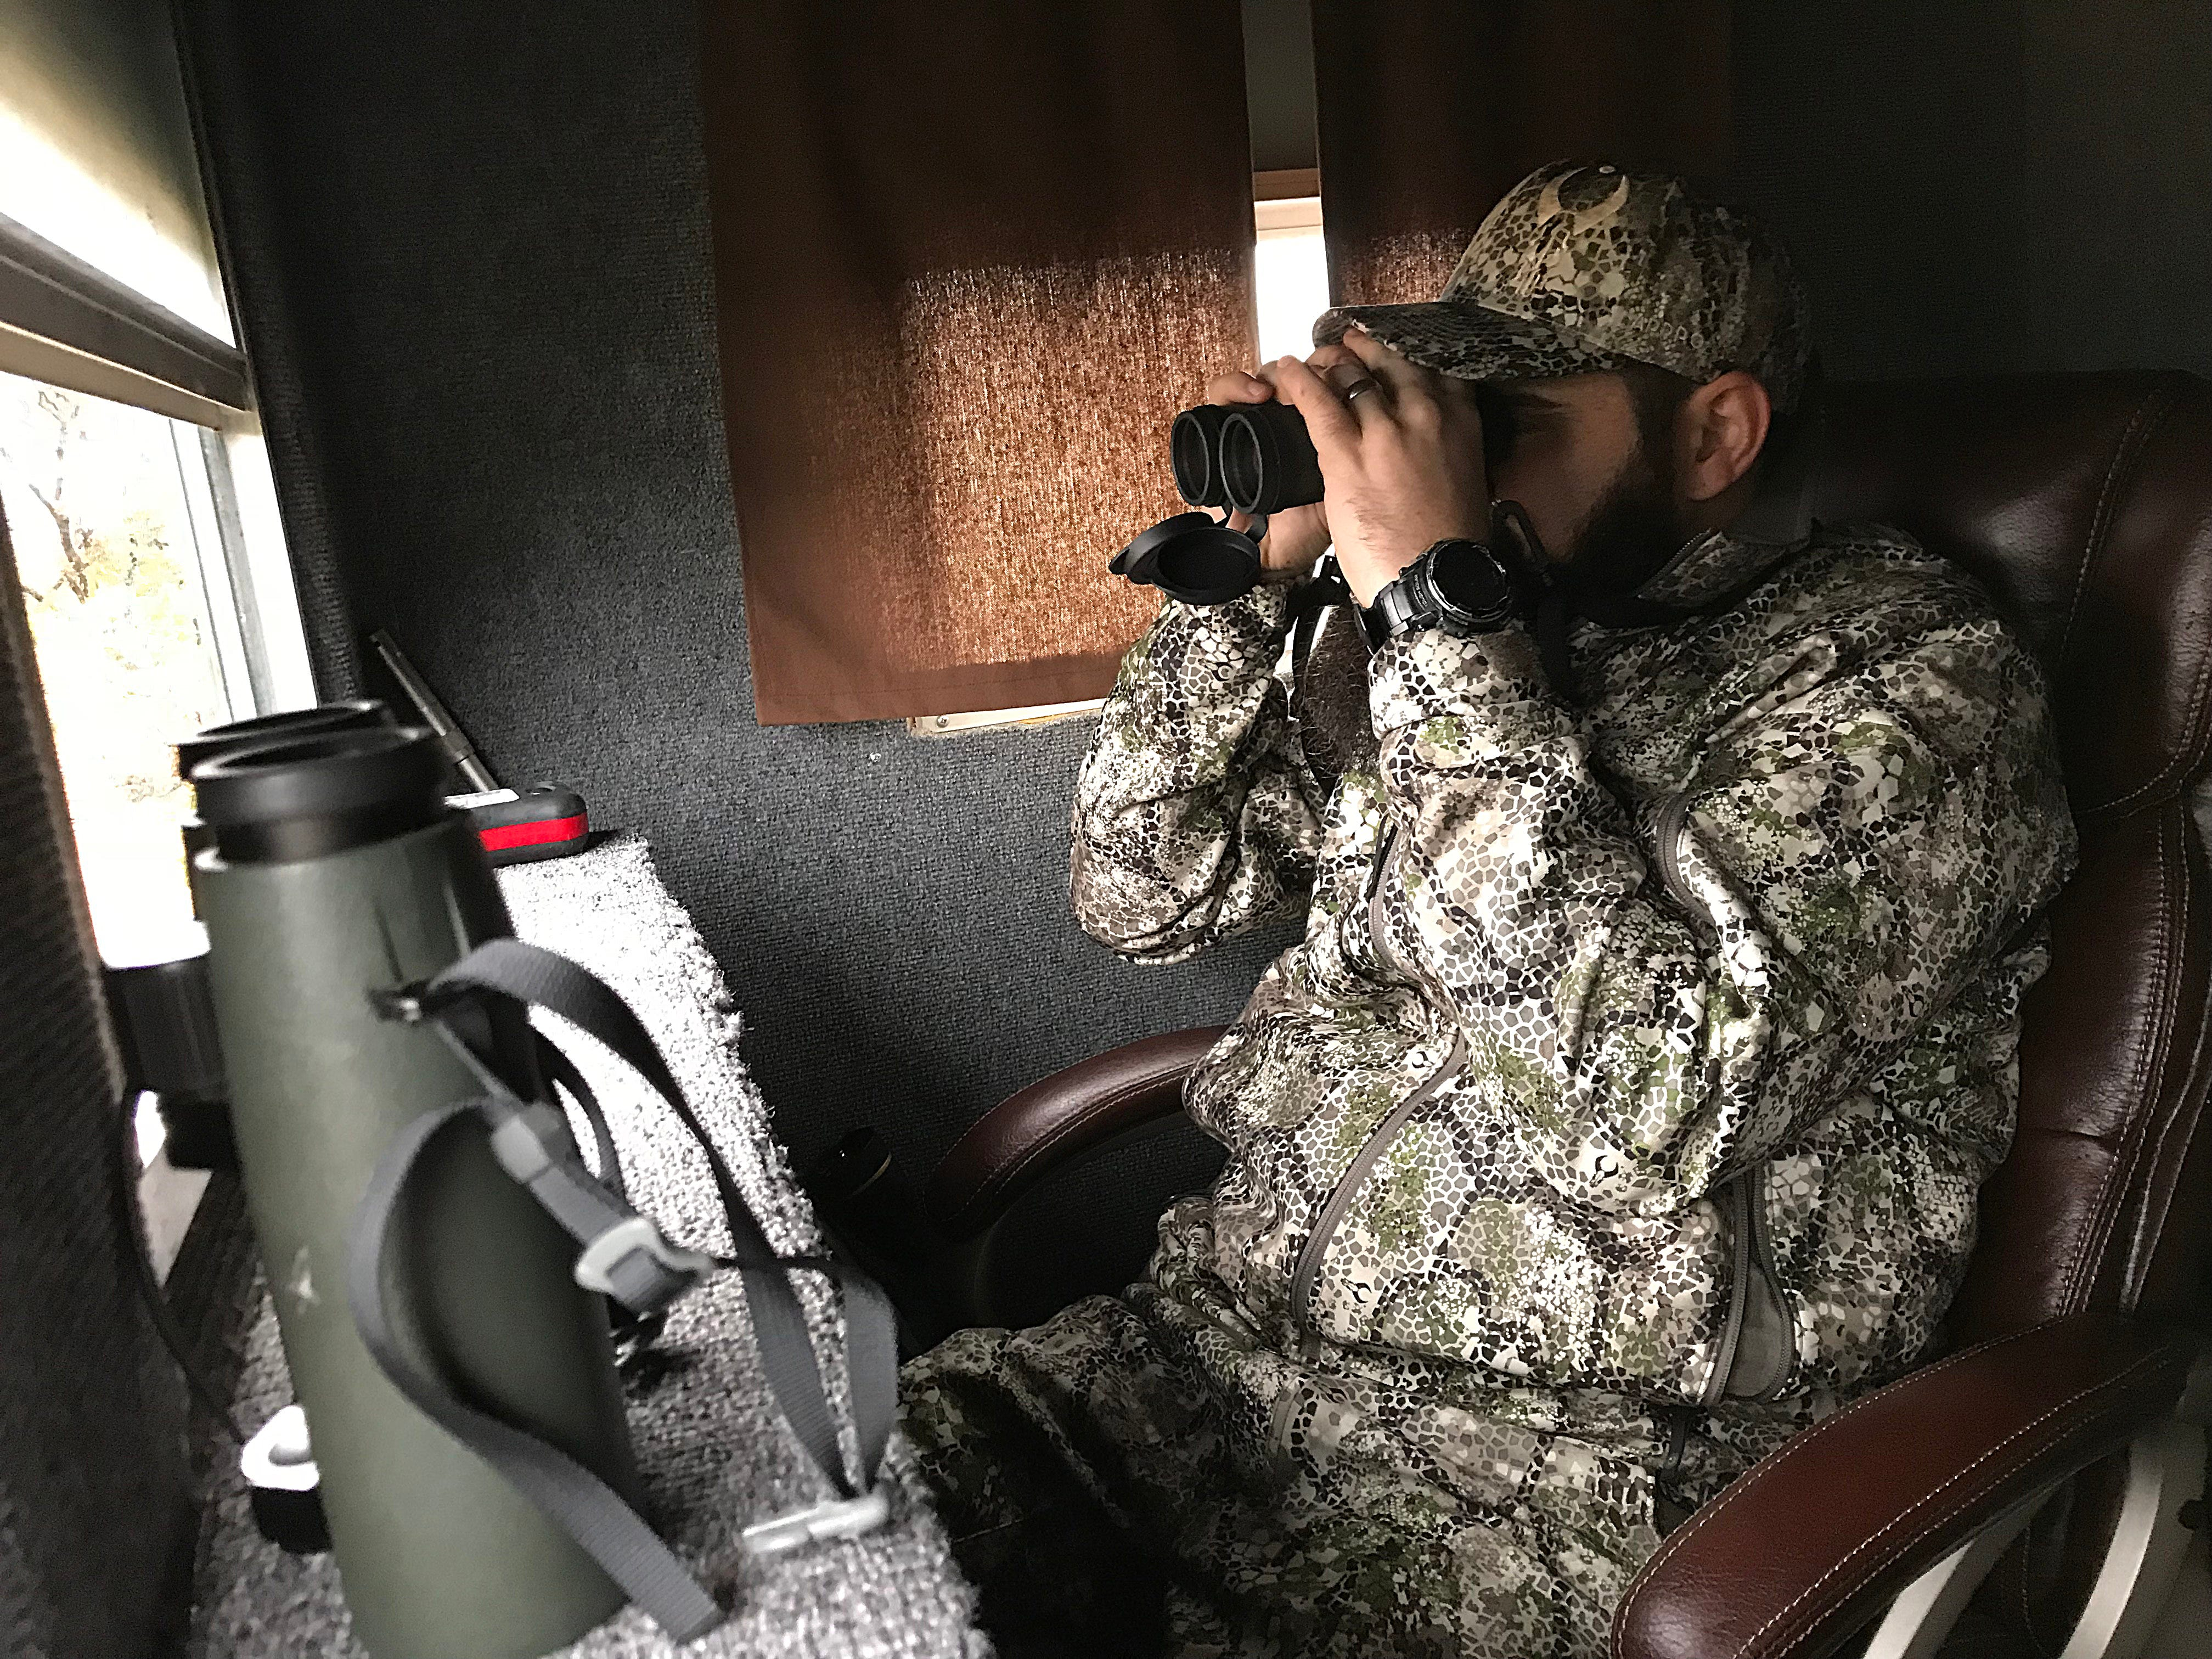 Veteran Joseph Lewis watches for deer during the annual deer hunt in Christoval Friday, Dec. 7, 2018 sponsored by San Angelo Support for Veterans and Lone Star Warriors Outdoors.The hunt included 18 combat injured veterans from across the nation.